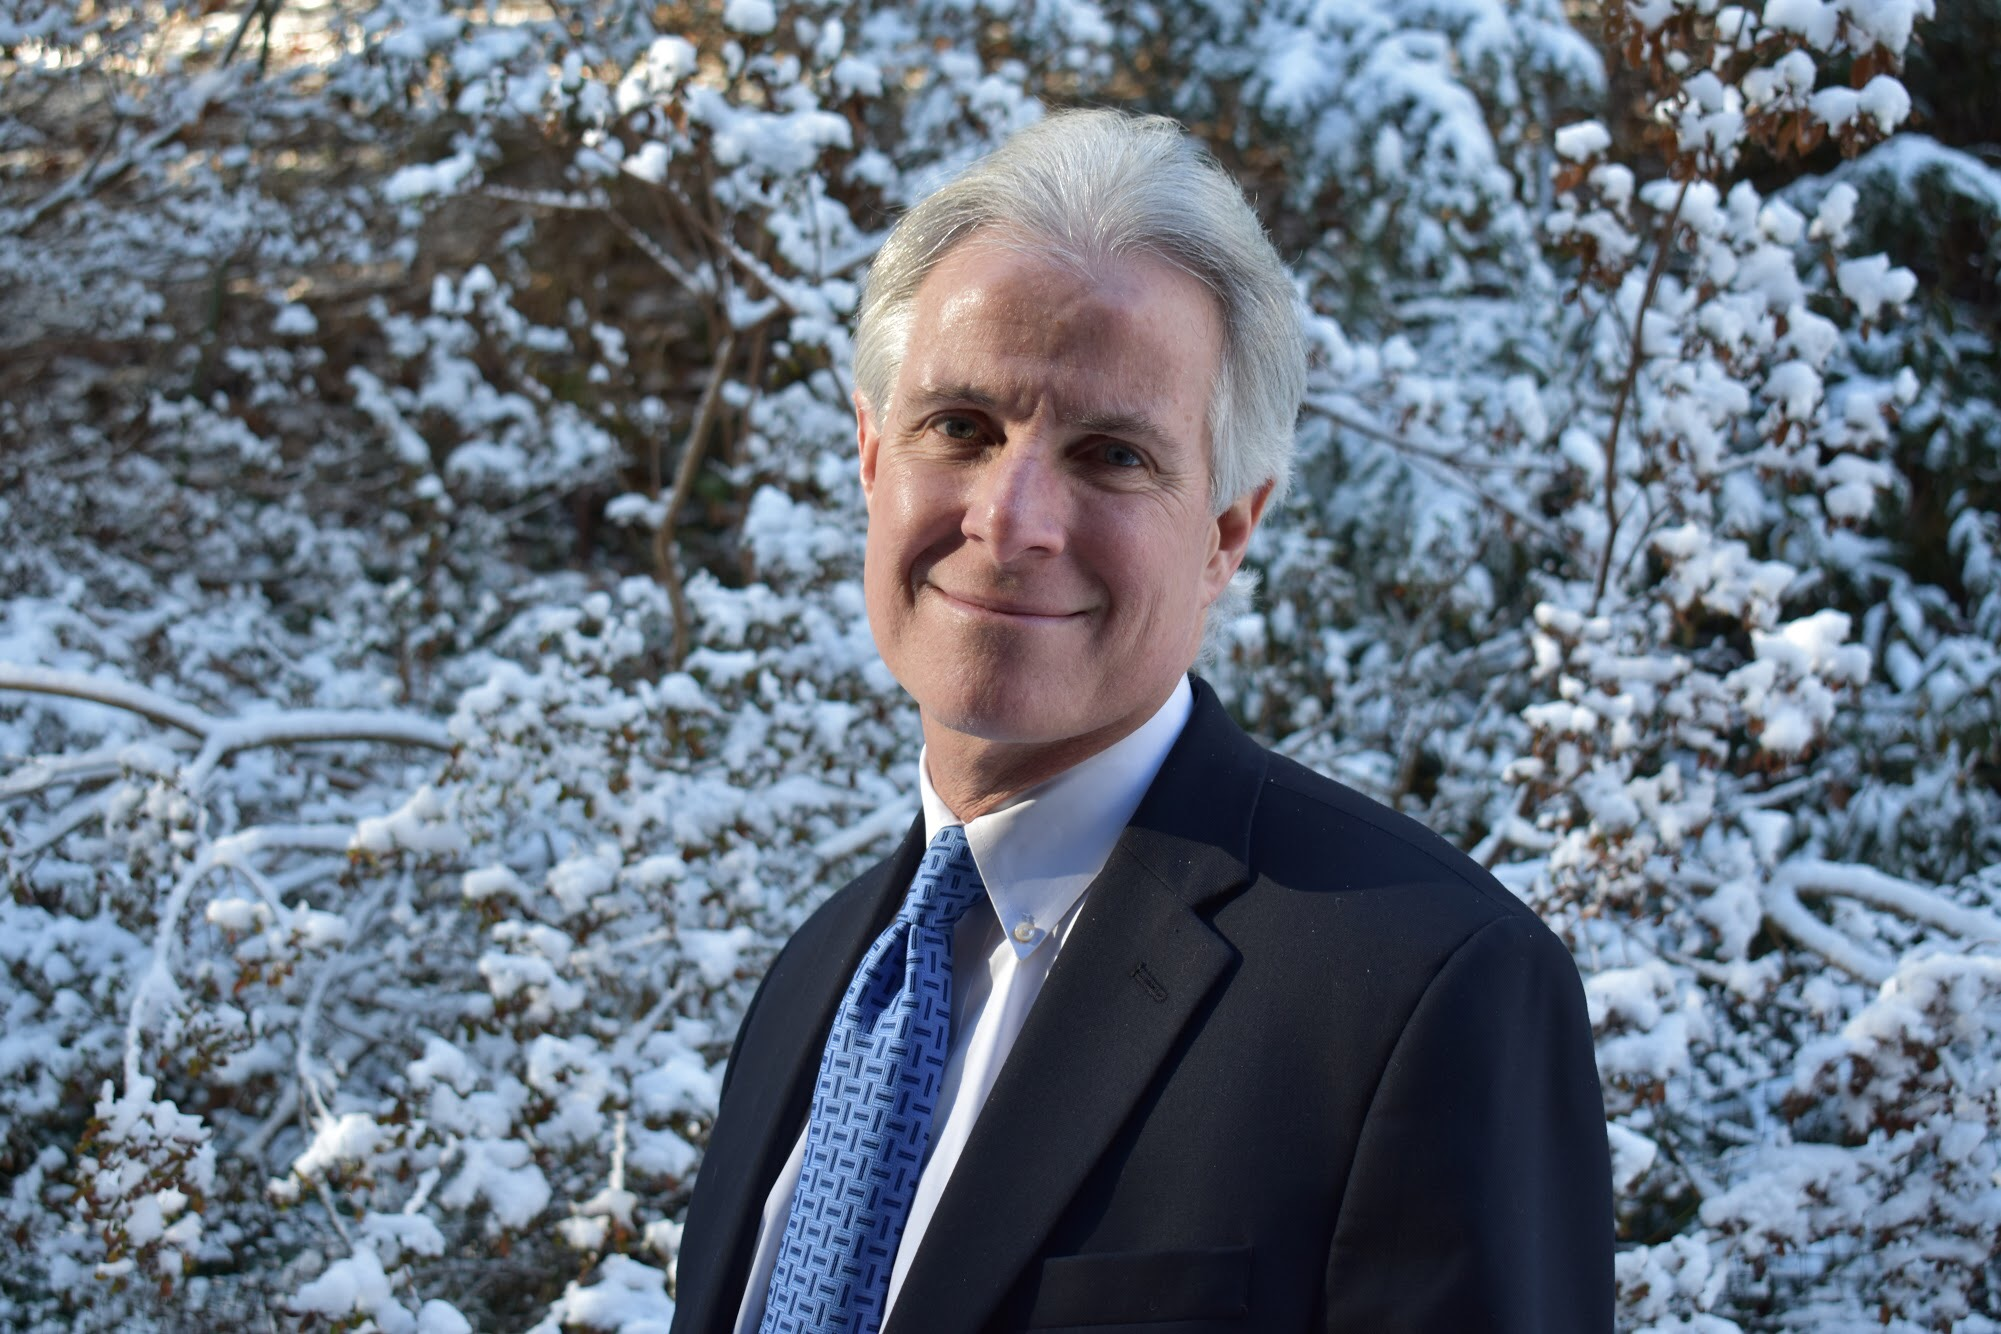 James Shalley, founding partner, and White Plains theft defense attorney, has been compassionately helping people through the anxiety of shoplifting accusations for more than twenty years.